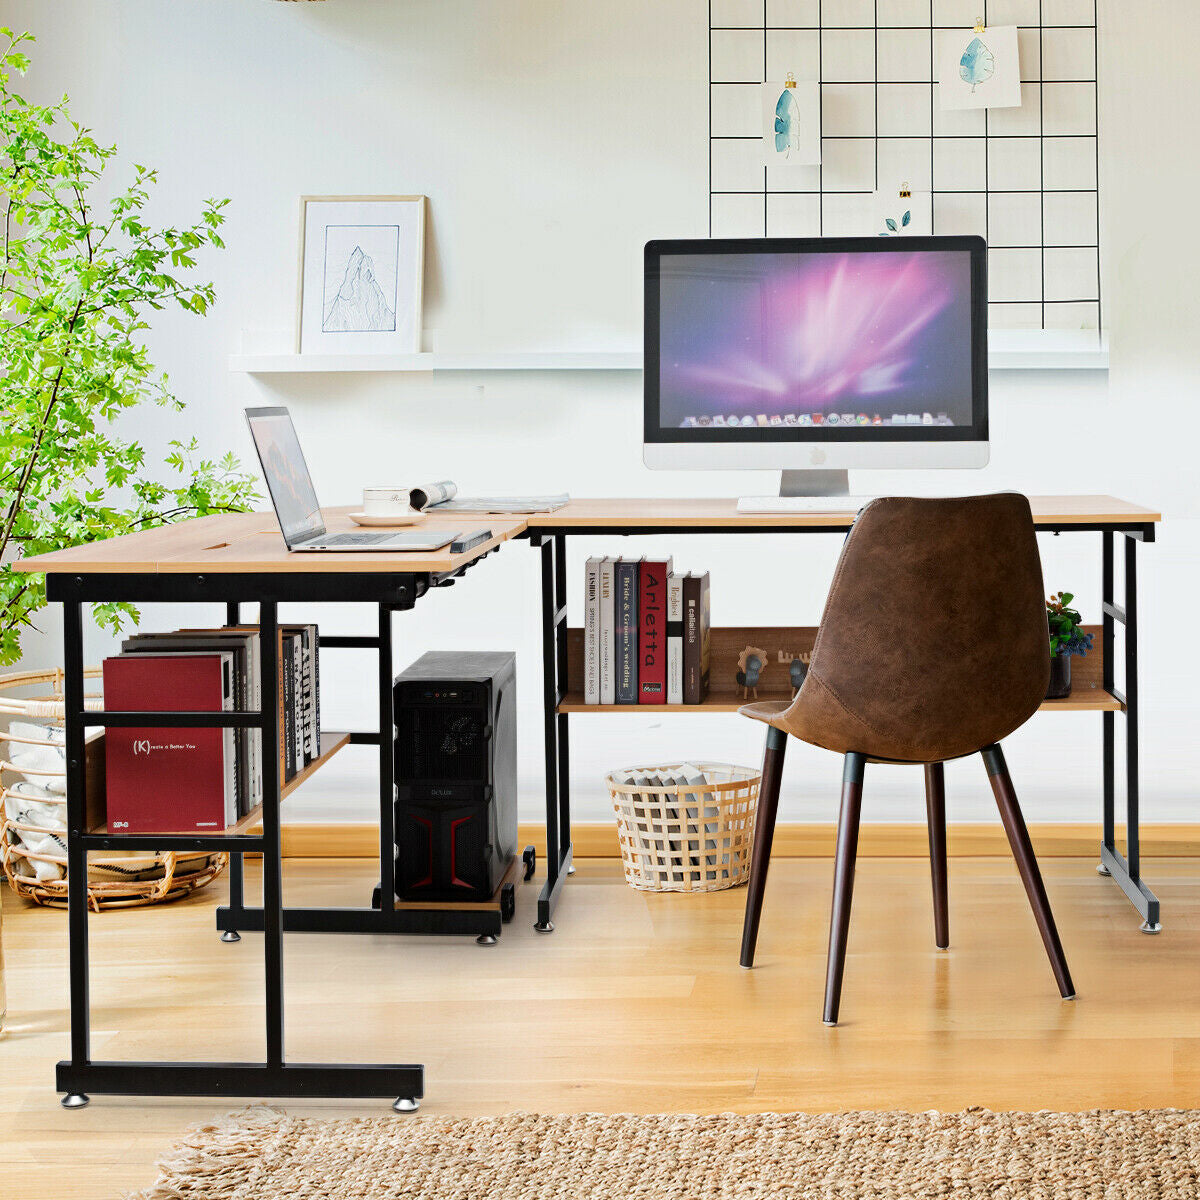 OfficeMateZ™ Computer Desk With Bookshelf L Shaped Desk With Bookshelf